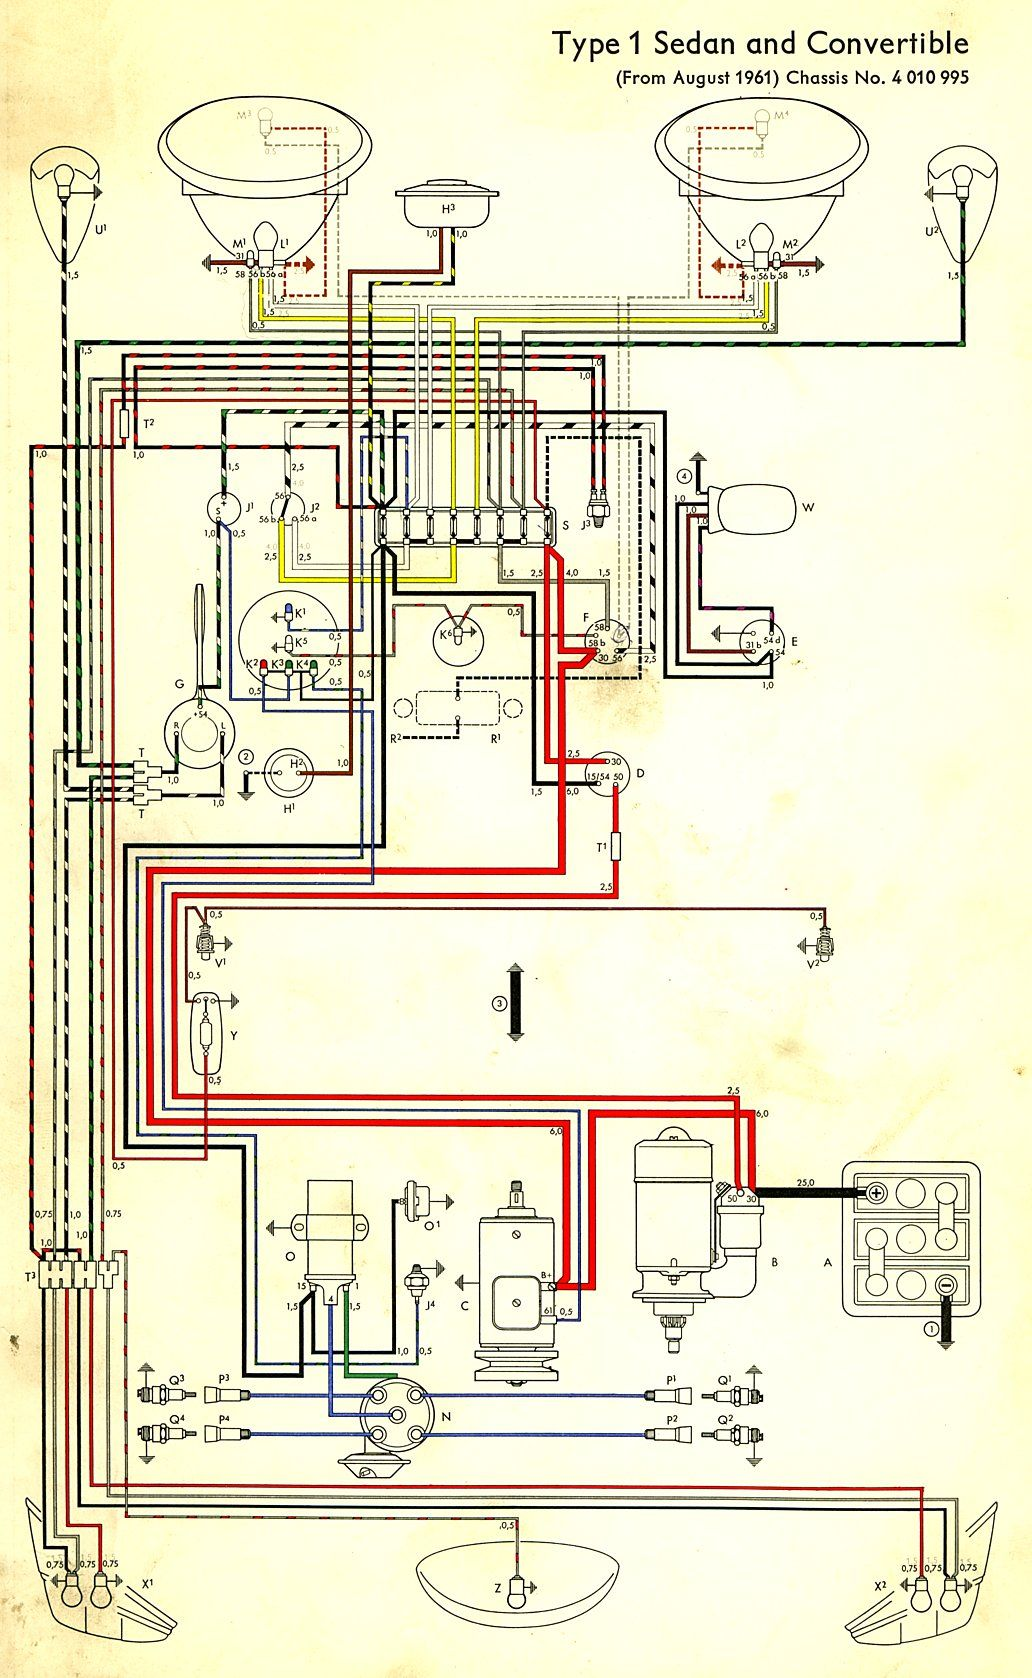 f471c06218a1f57c2503376a8b366a28 wiring diagram in color 1964 vw bug, beetle, convertible the vw bug wiring at panicattacktreatment.co